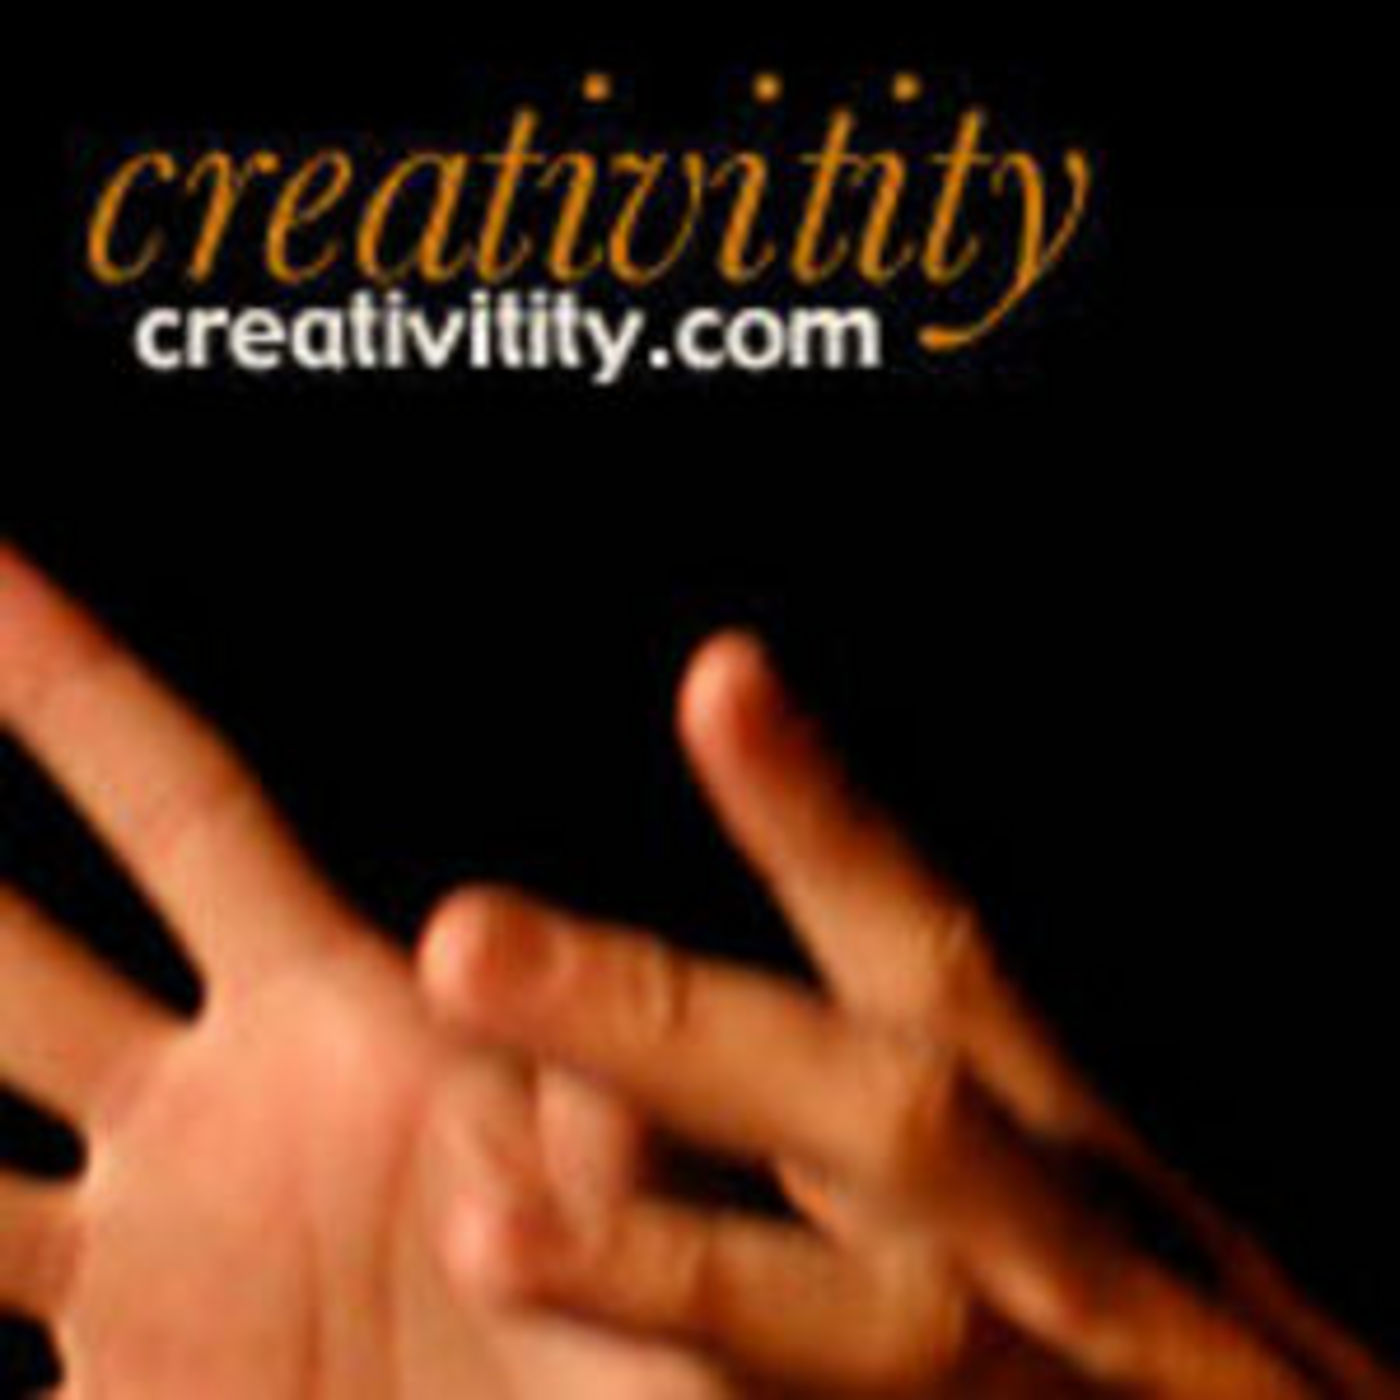 <![CDATA[Creativitity: Podcast and Blog]]>